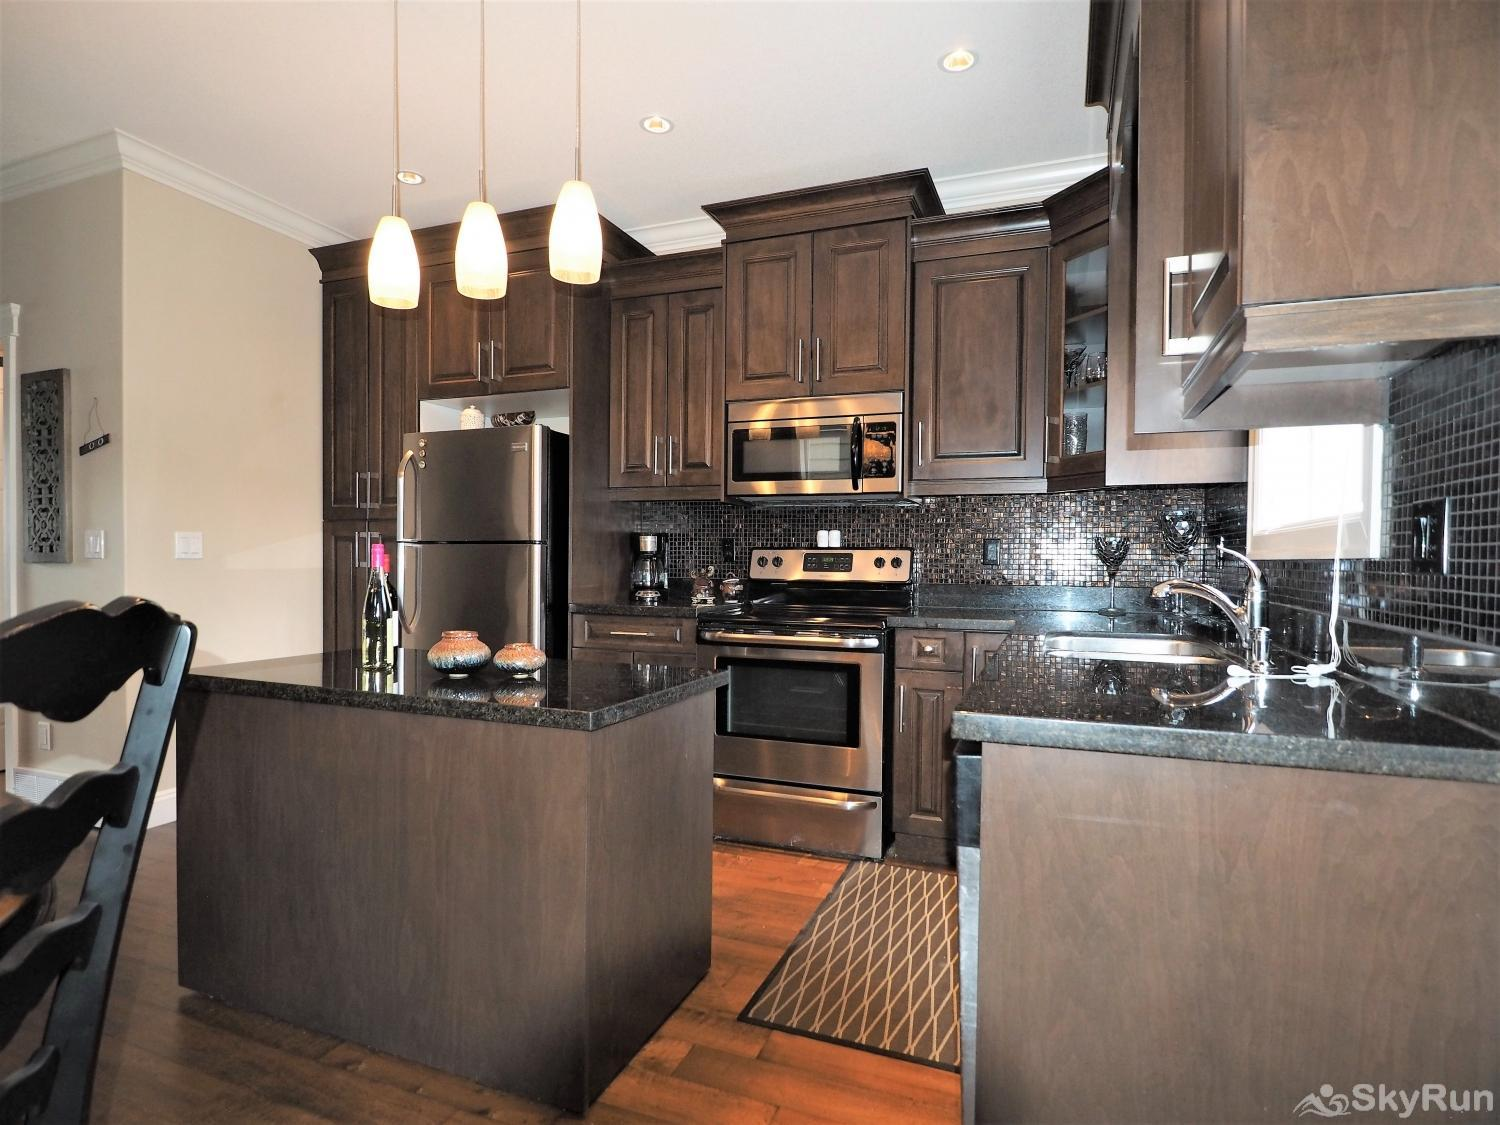 Old Summerland 3 bedroom home Granite counter tops and stainless steel appliances make this kitchen a dream to cook in.